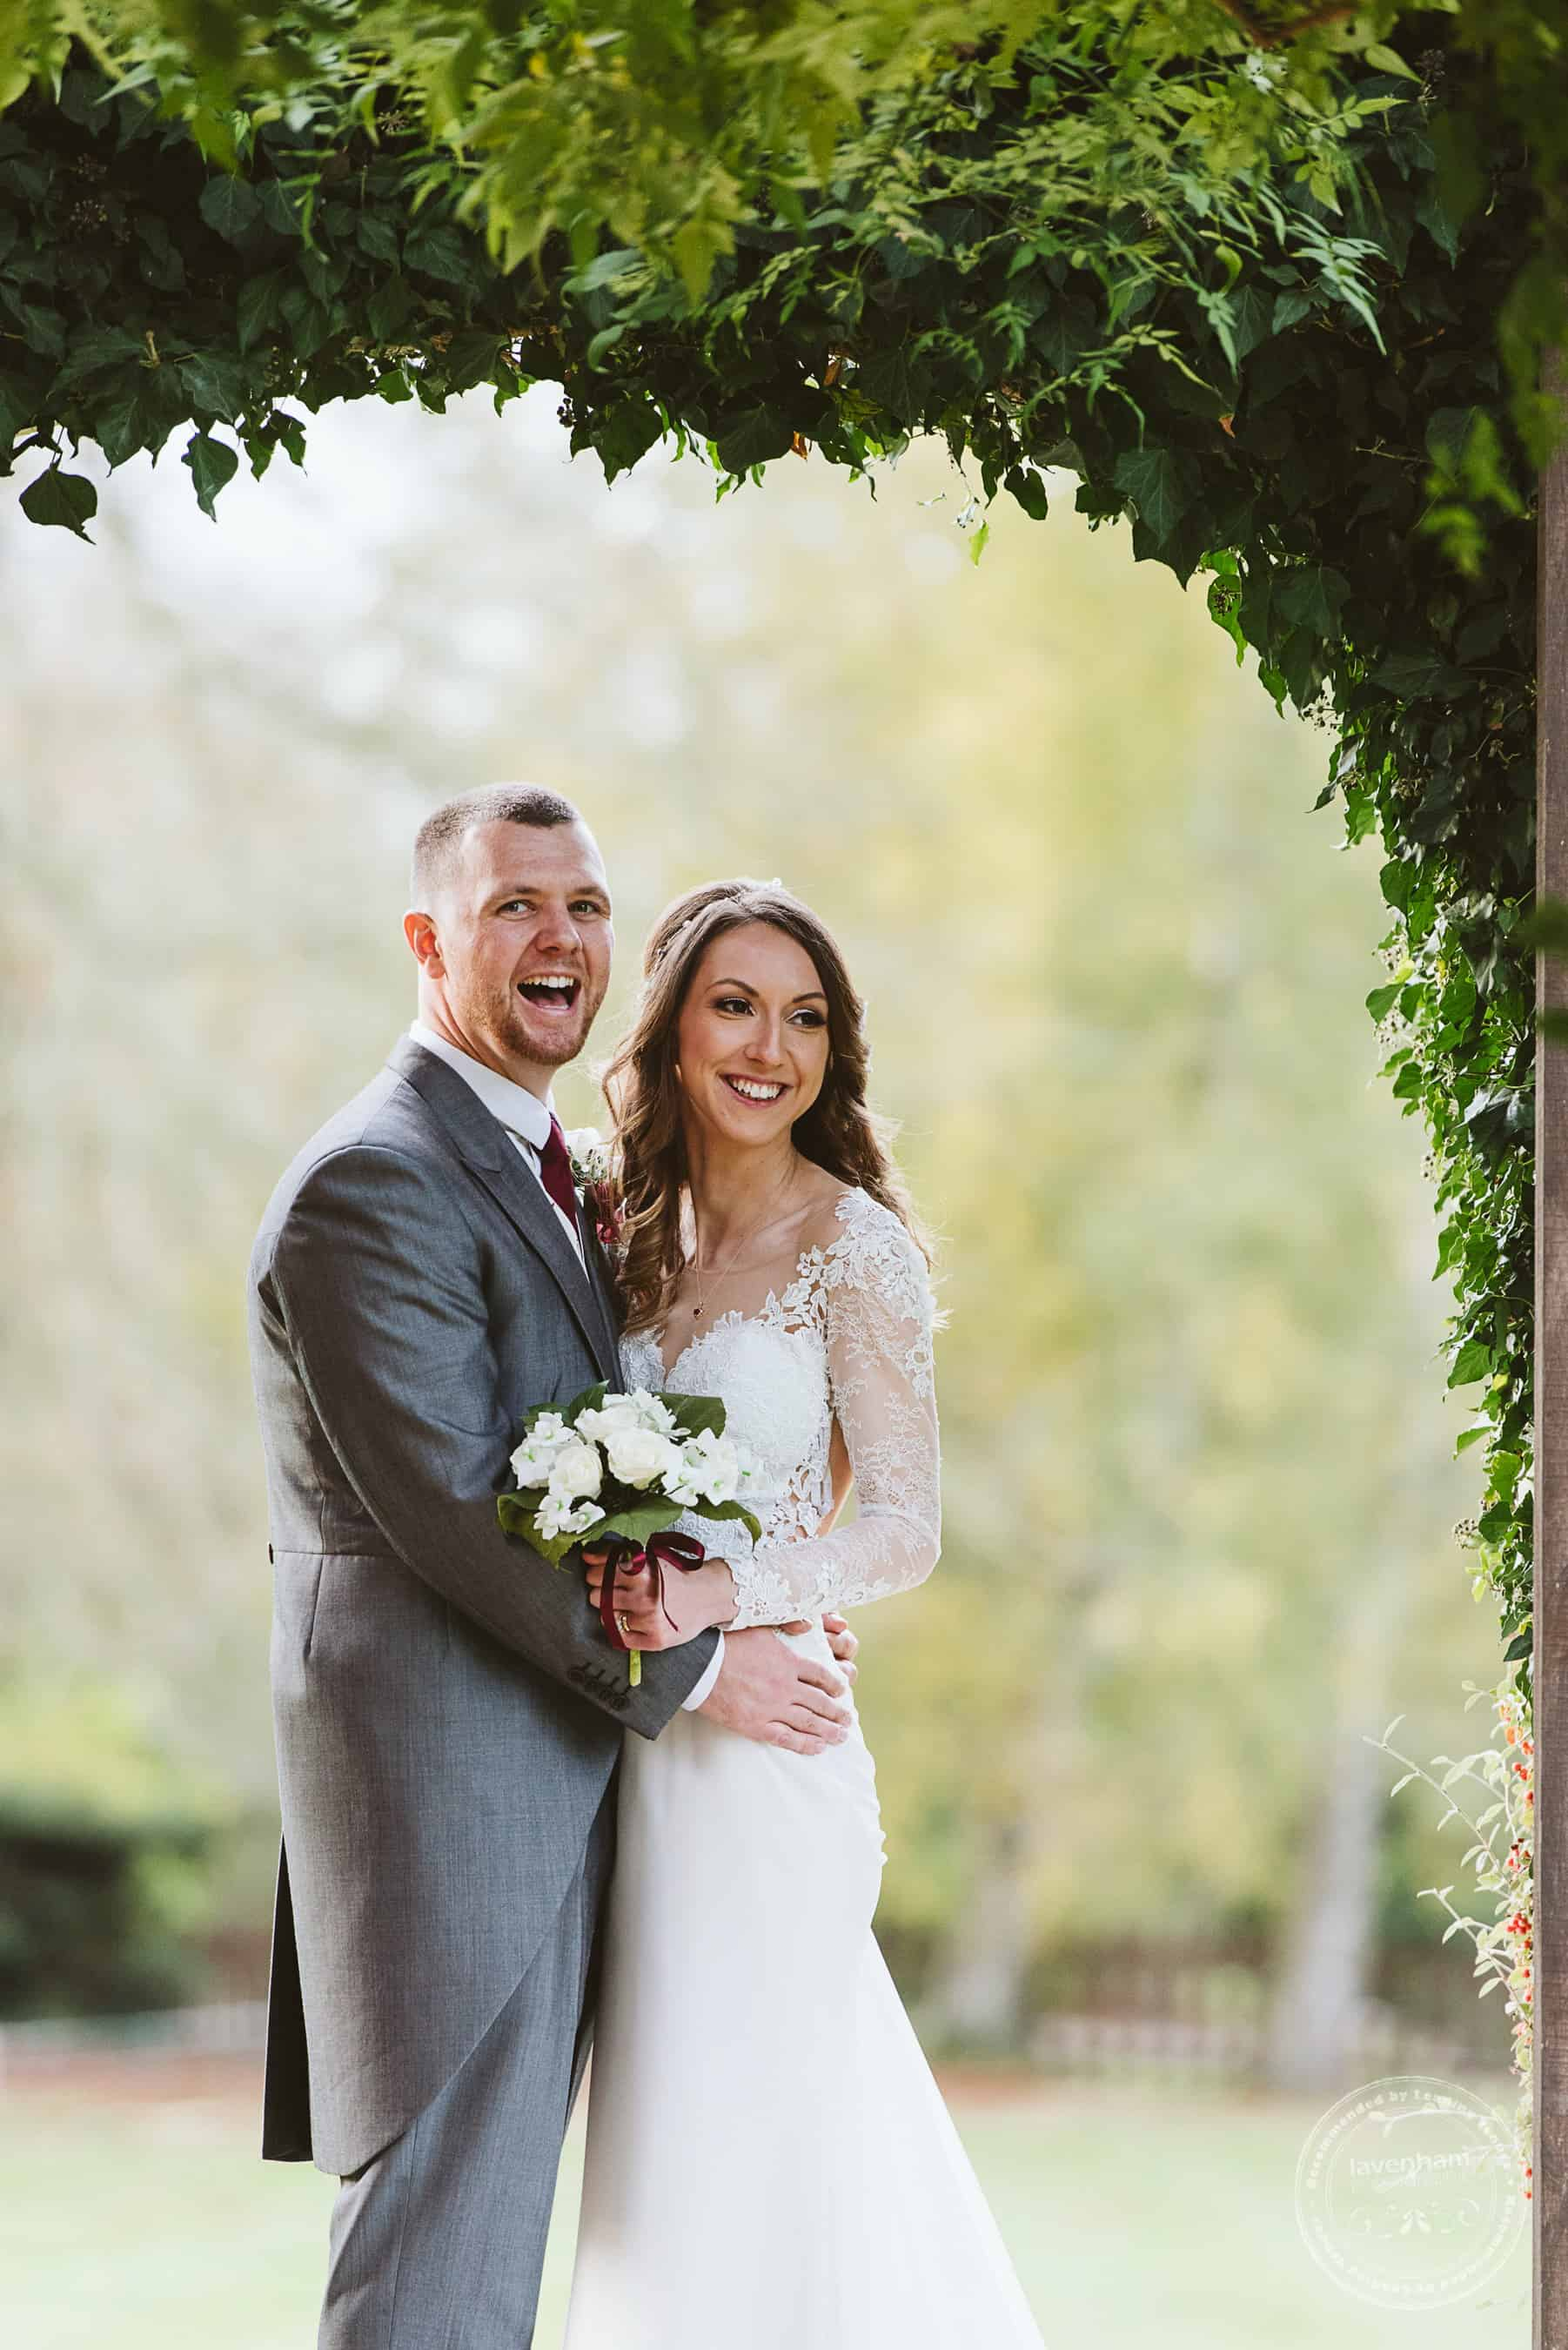 041118 Woodhall Manor Wedding Photography by Lavenham Photographic 090